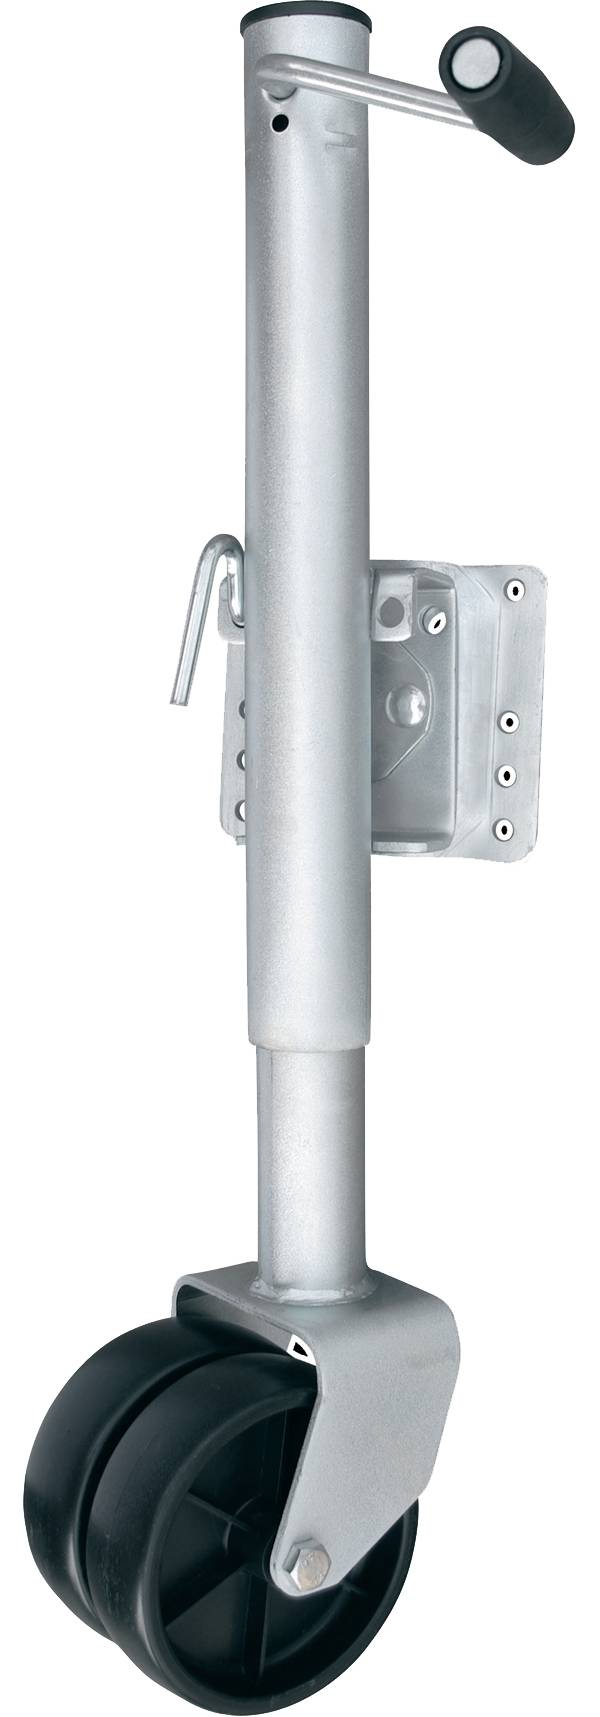 Attwood Fold Up Trailer Jack – 1500 lbs. product image